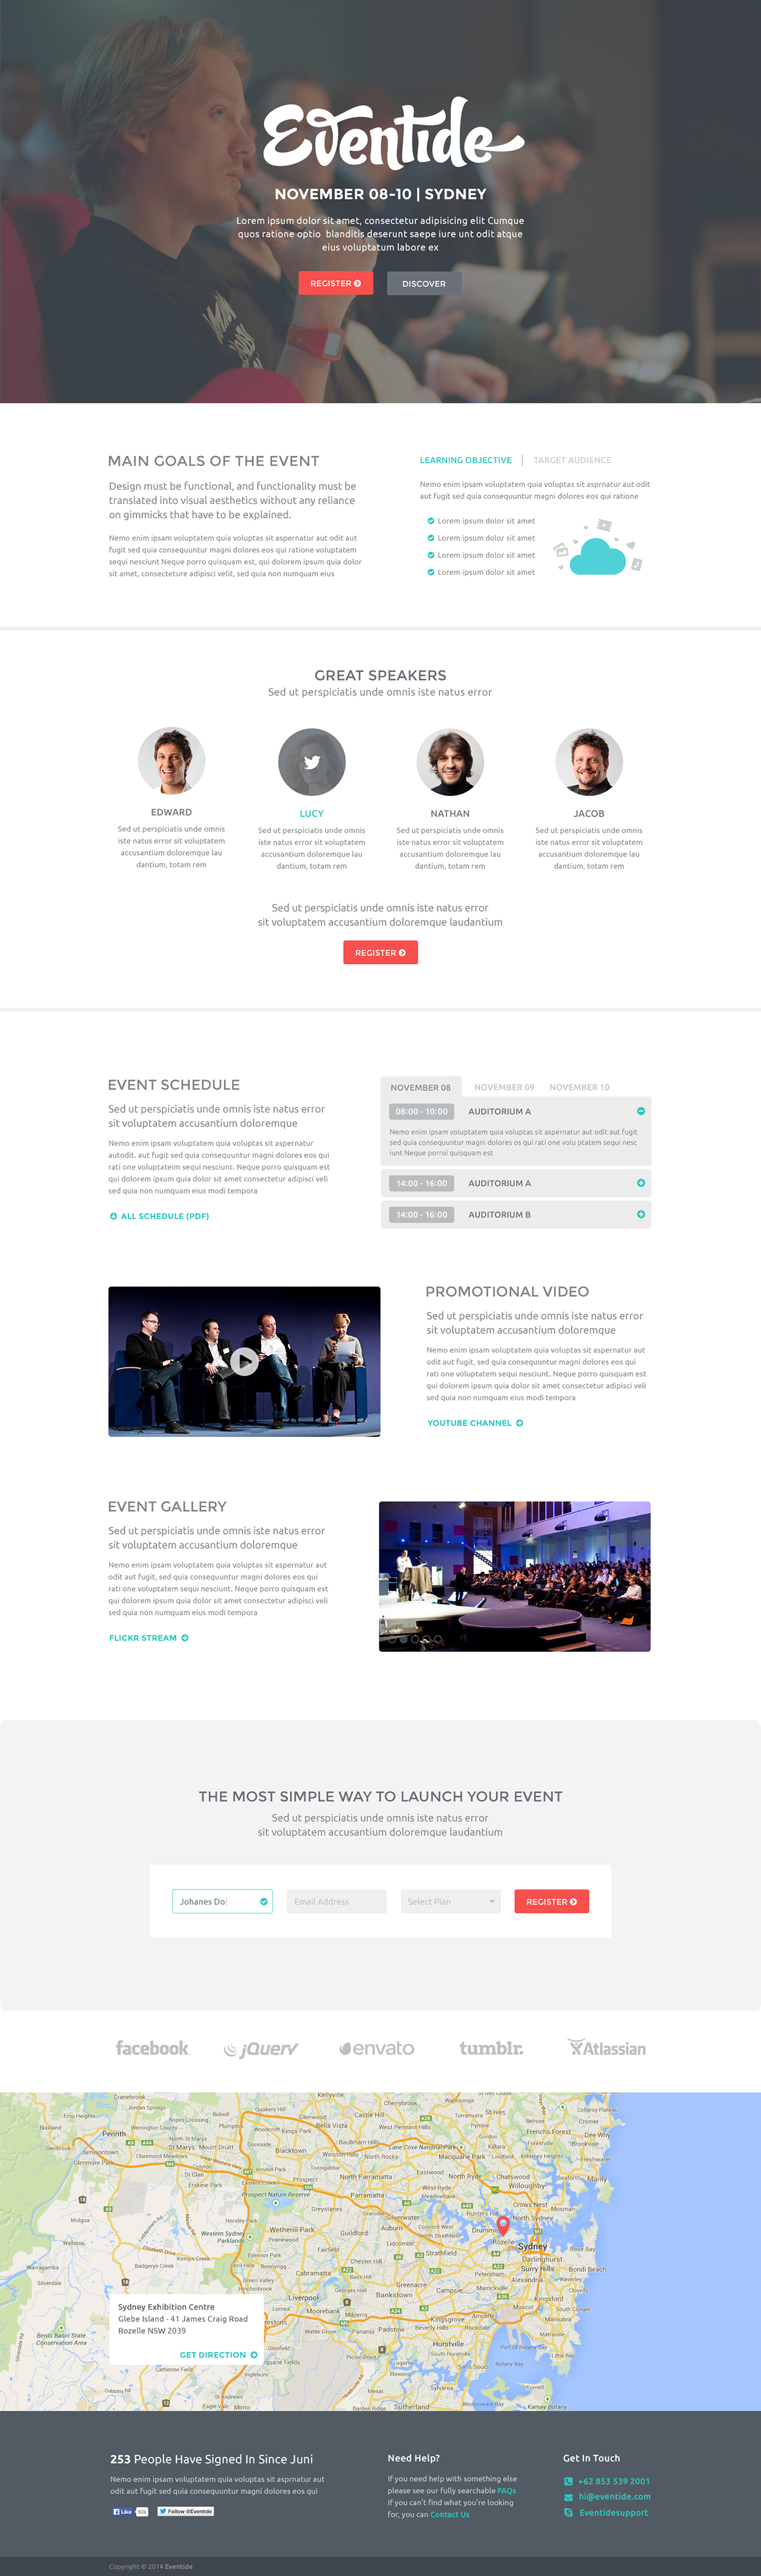 Eventide psd landing page free template on behance eventide is a clean and modern psd template designed for any events or conferences the main purpose of this template is to make users easy to use the pronofoot35fo Choice Image